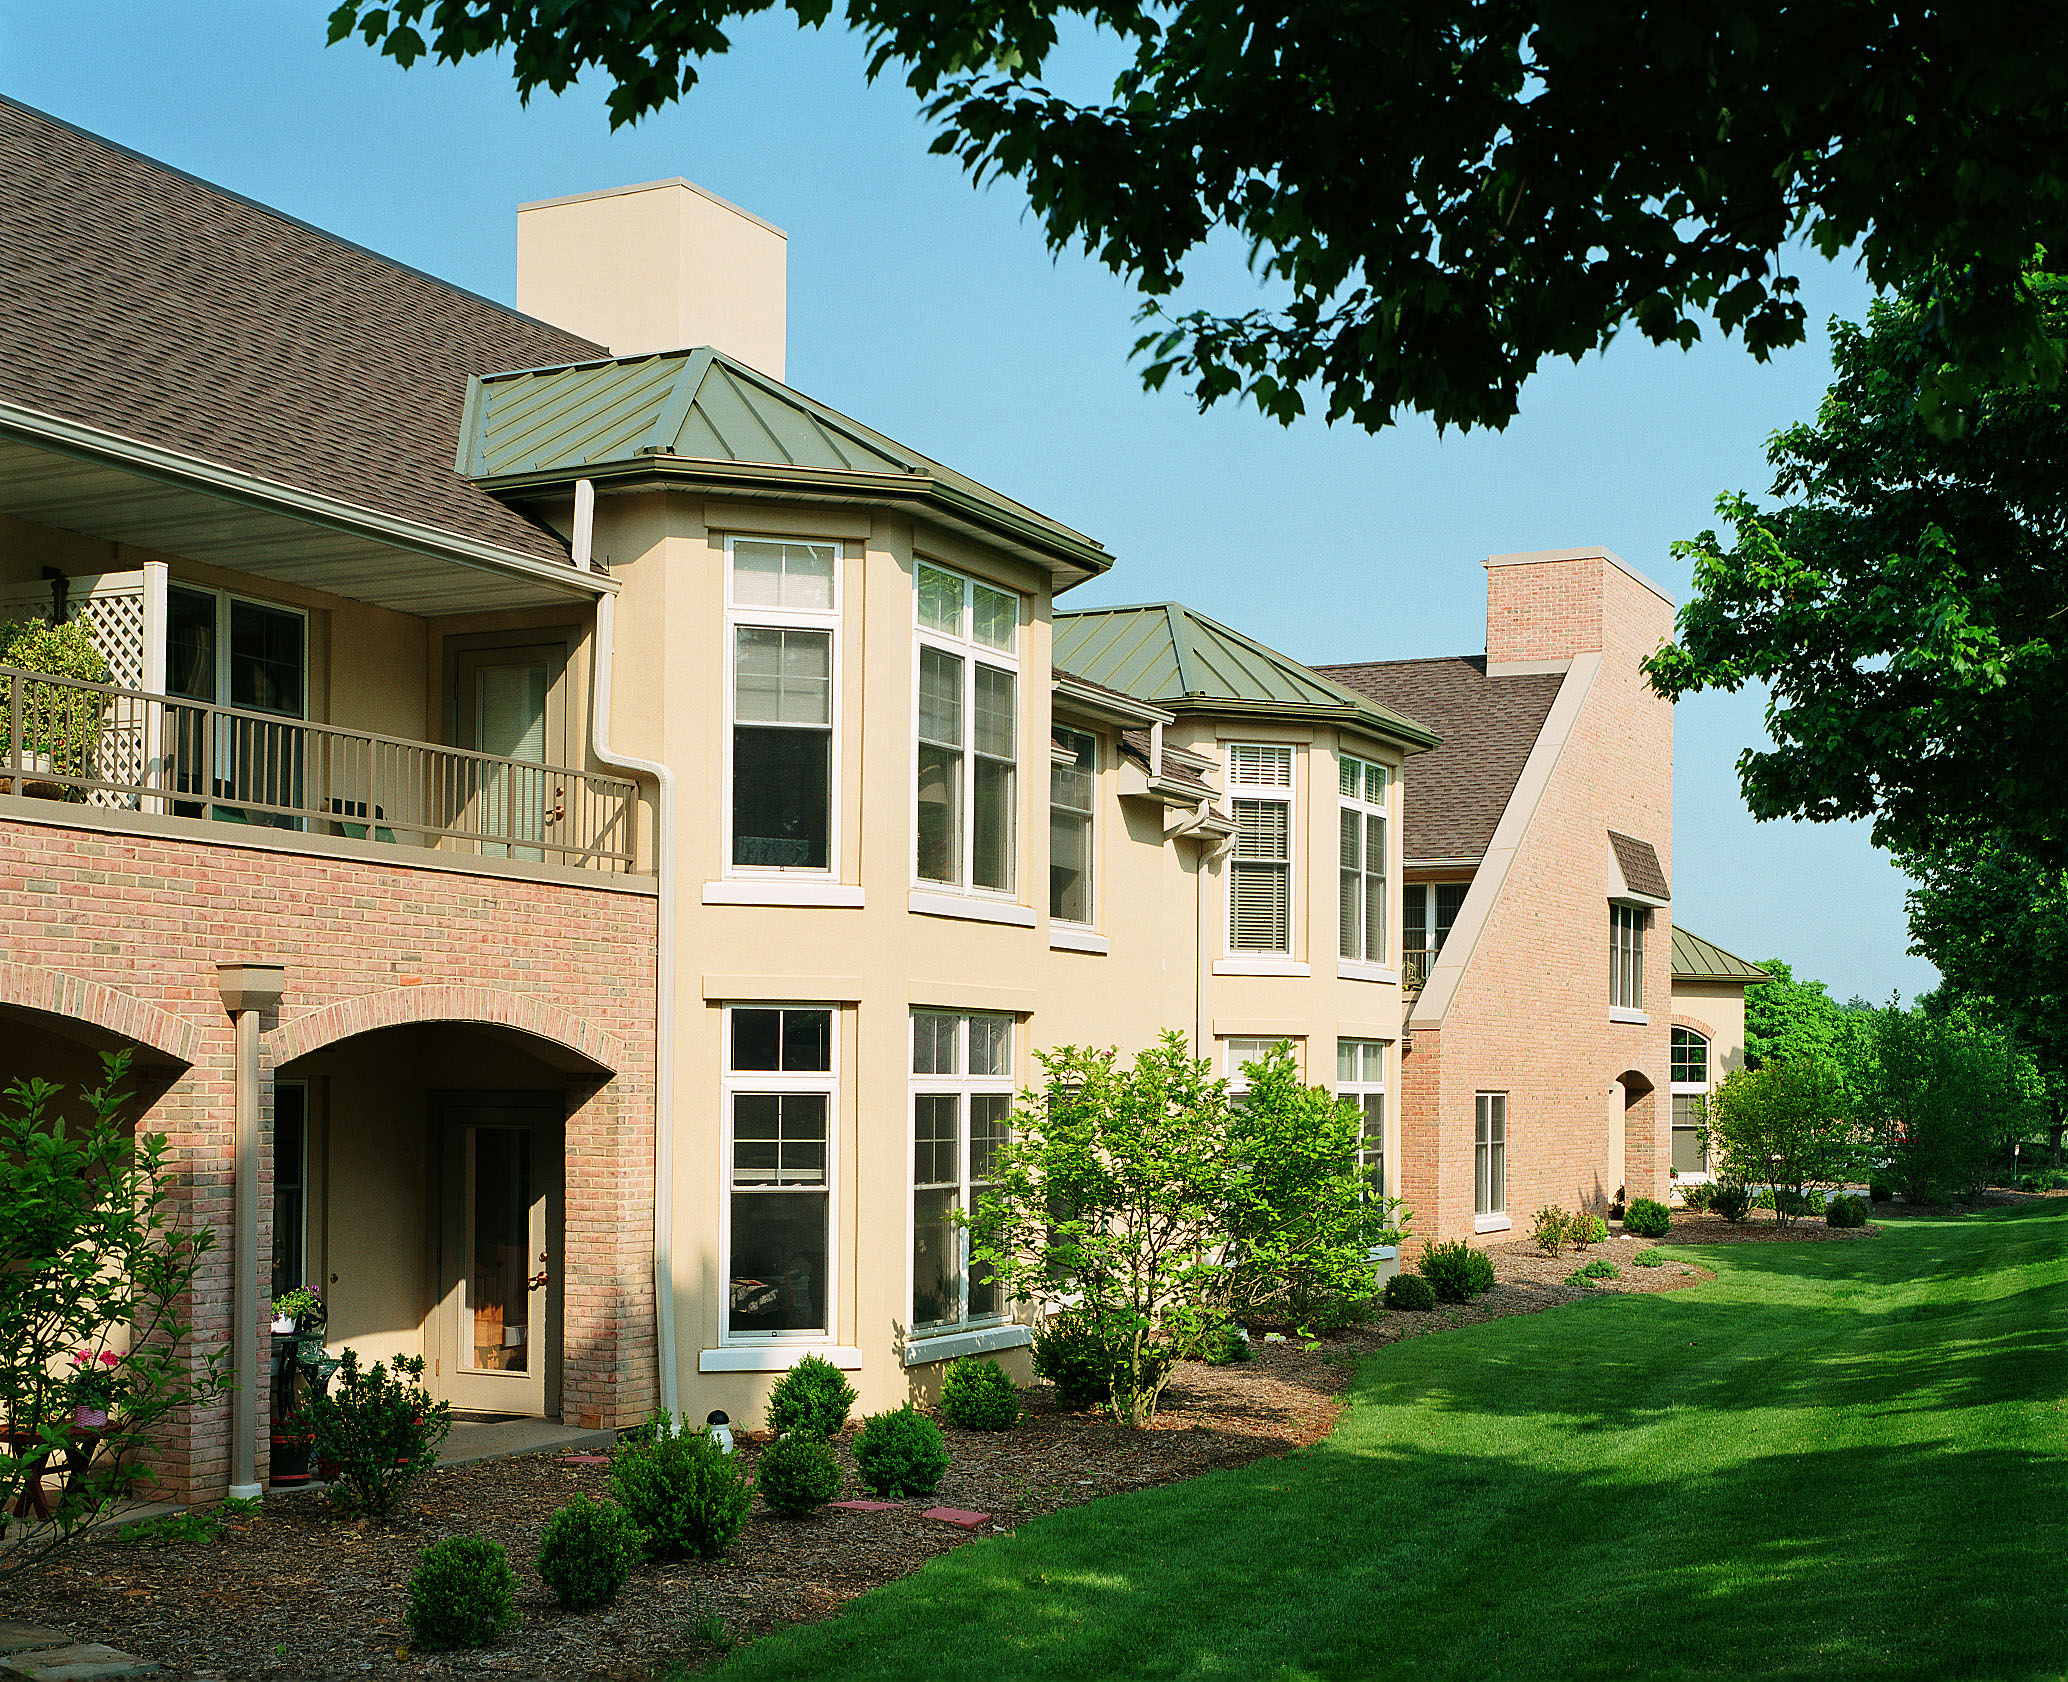 Moravian Manor Independent Living Wing - Retirement Communities